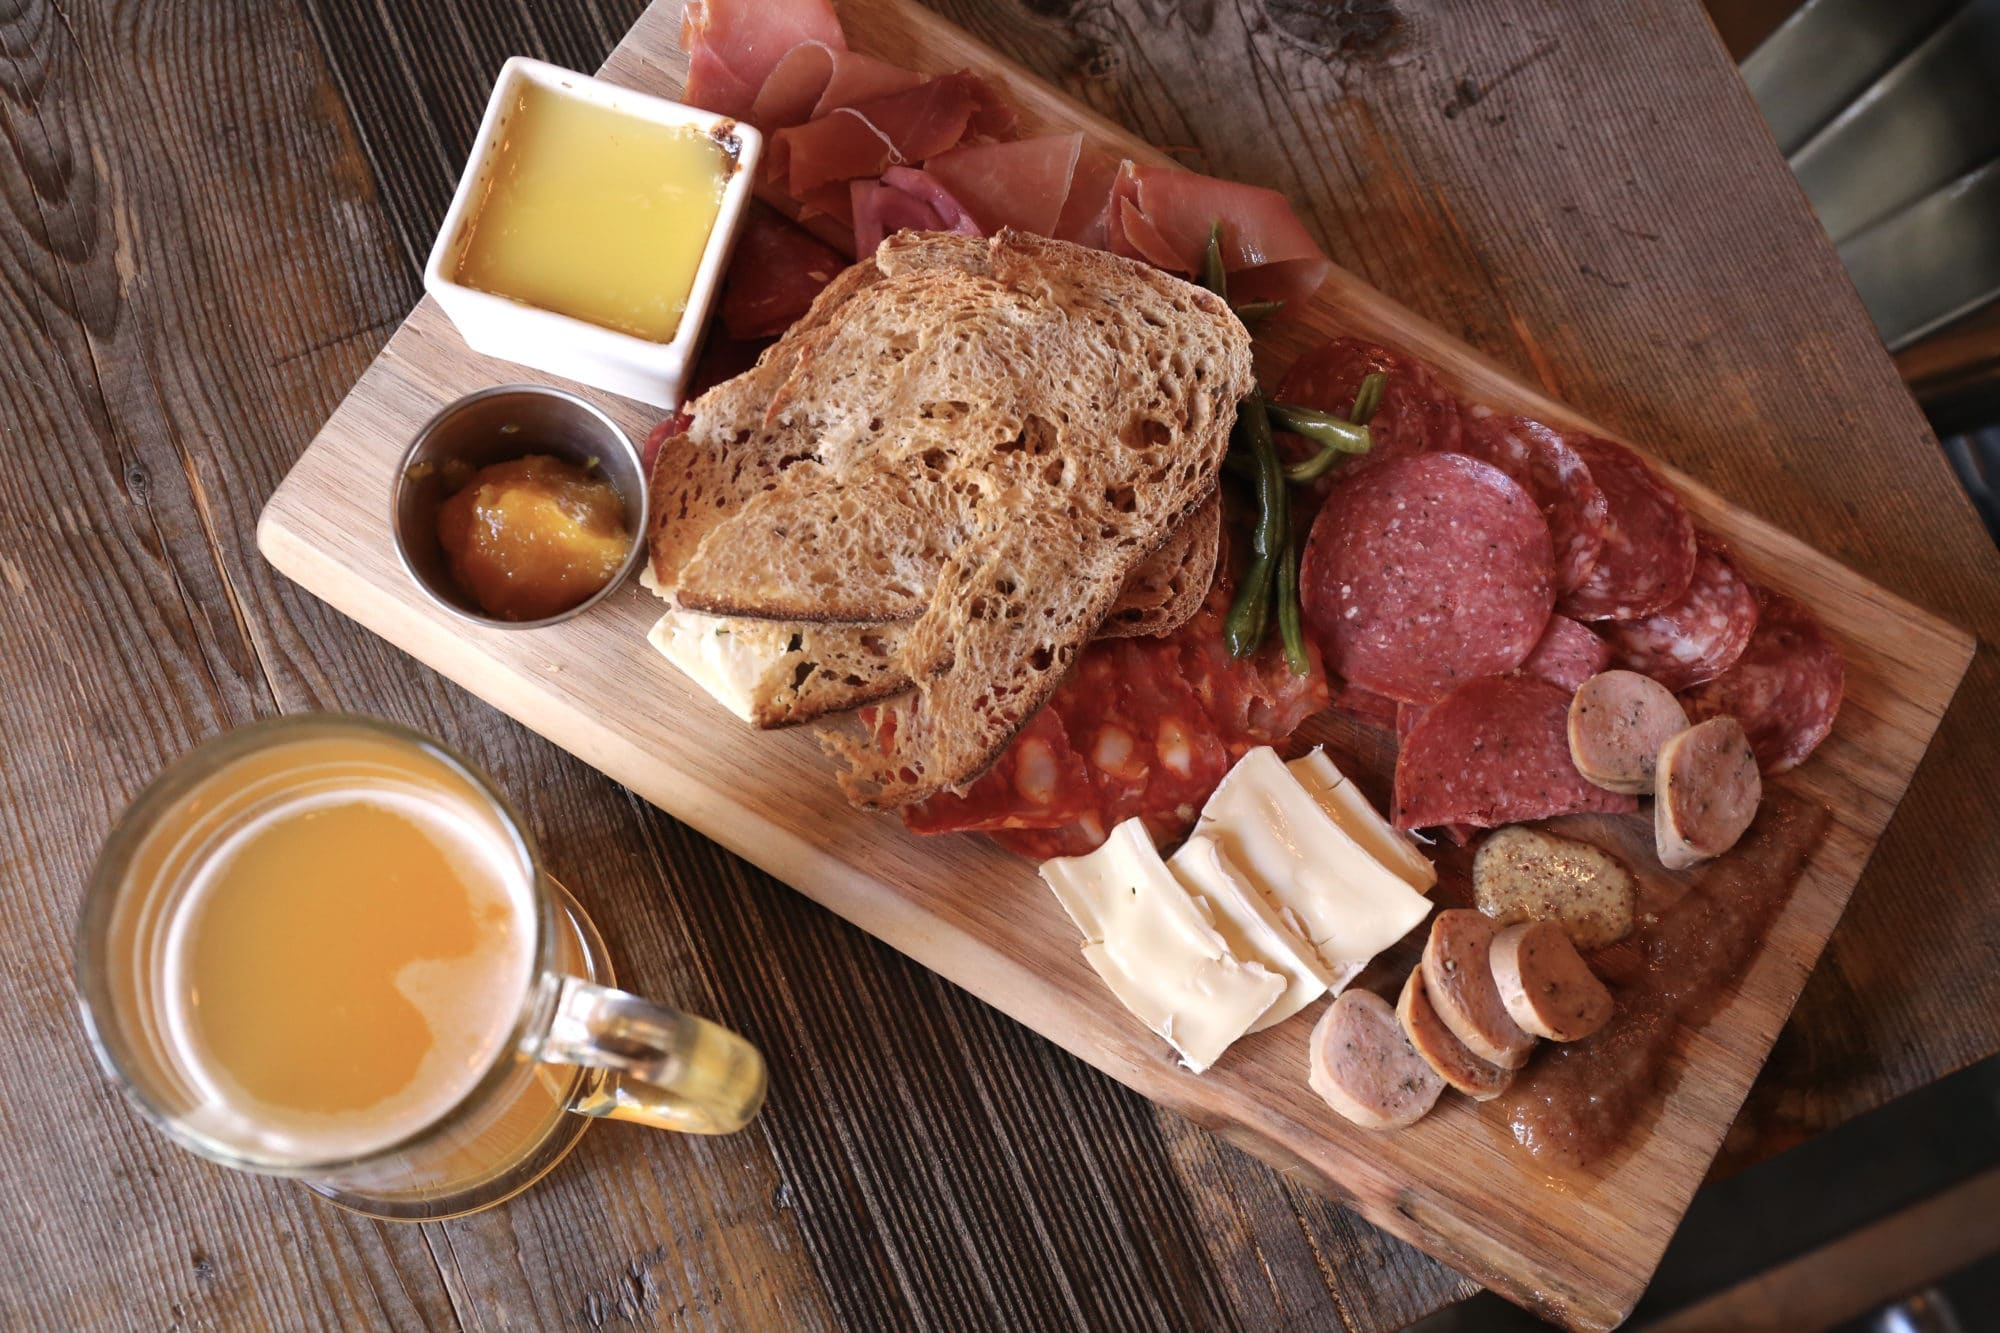 Enjoy a Charcuterie & Cheese Board with a beer at Abe Erb Waterloo.